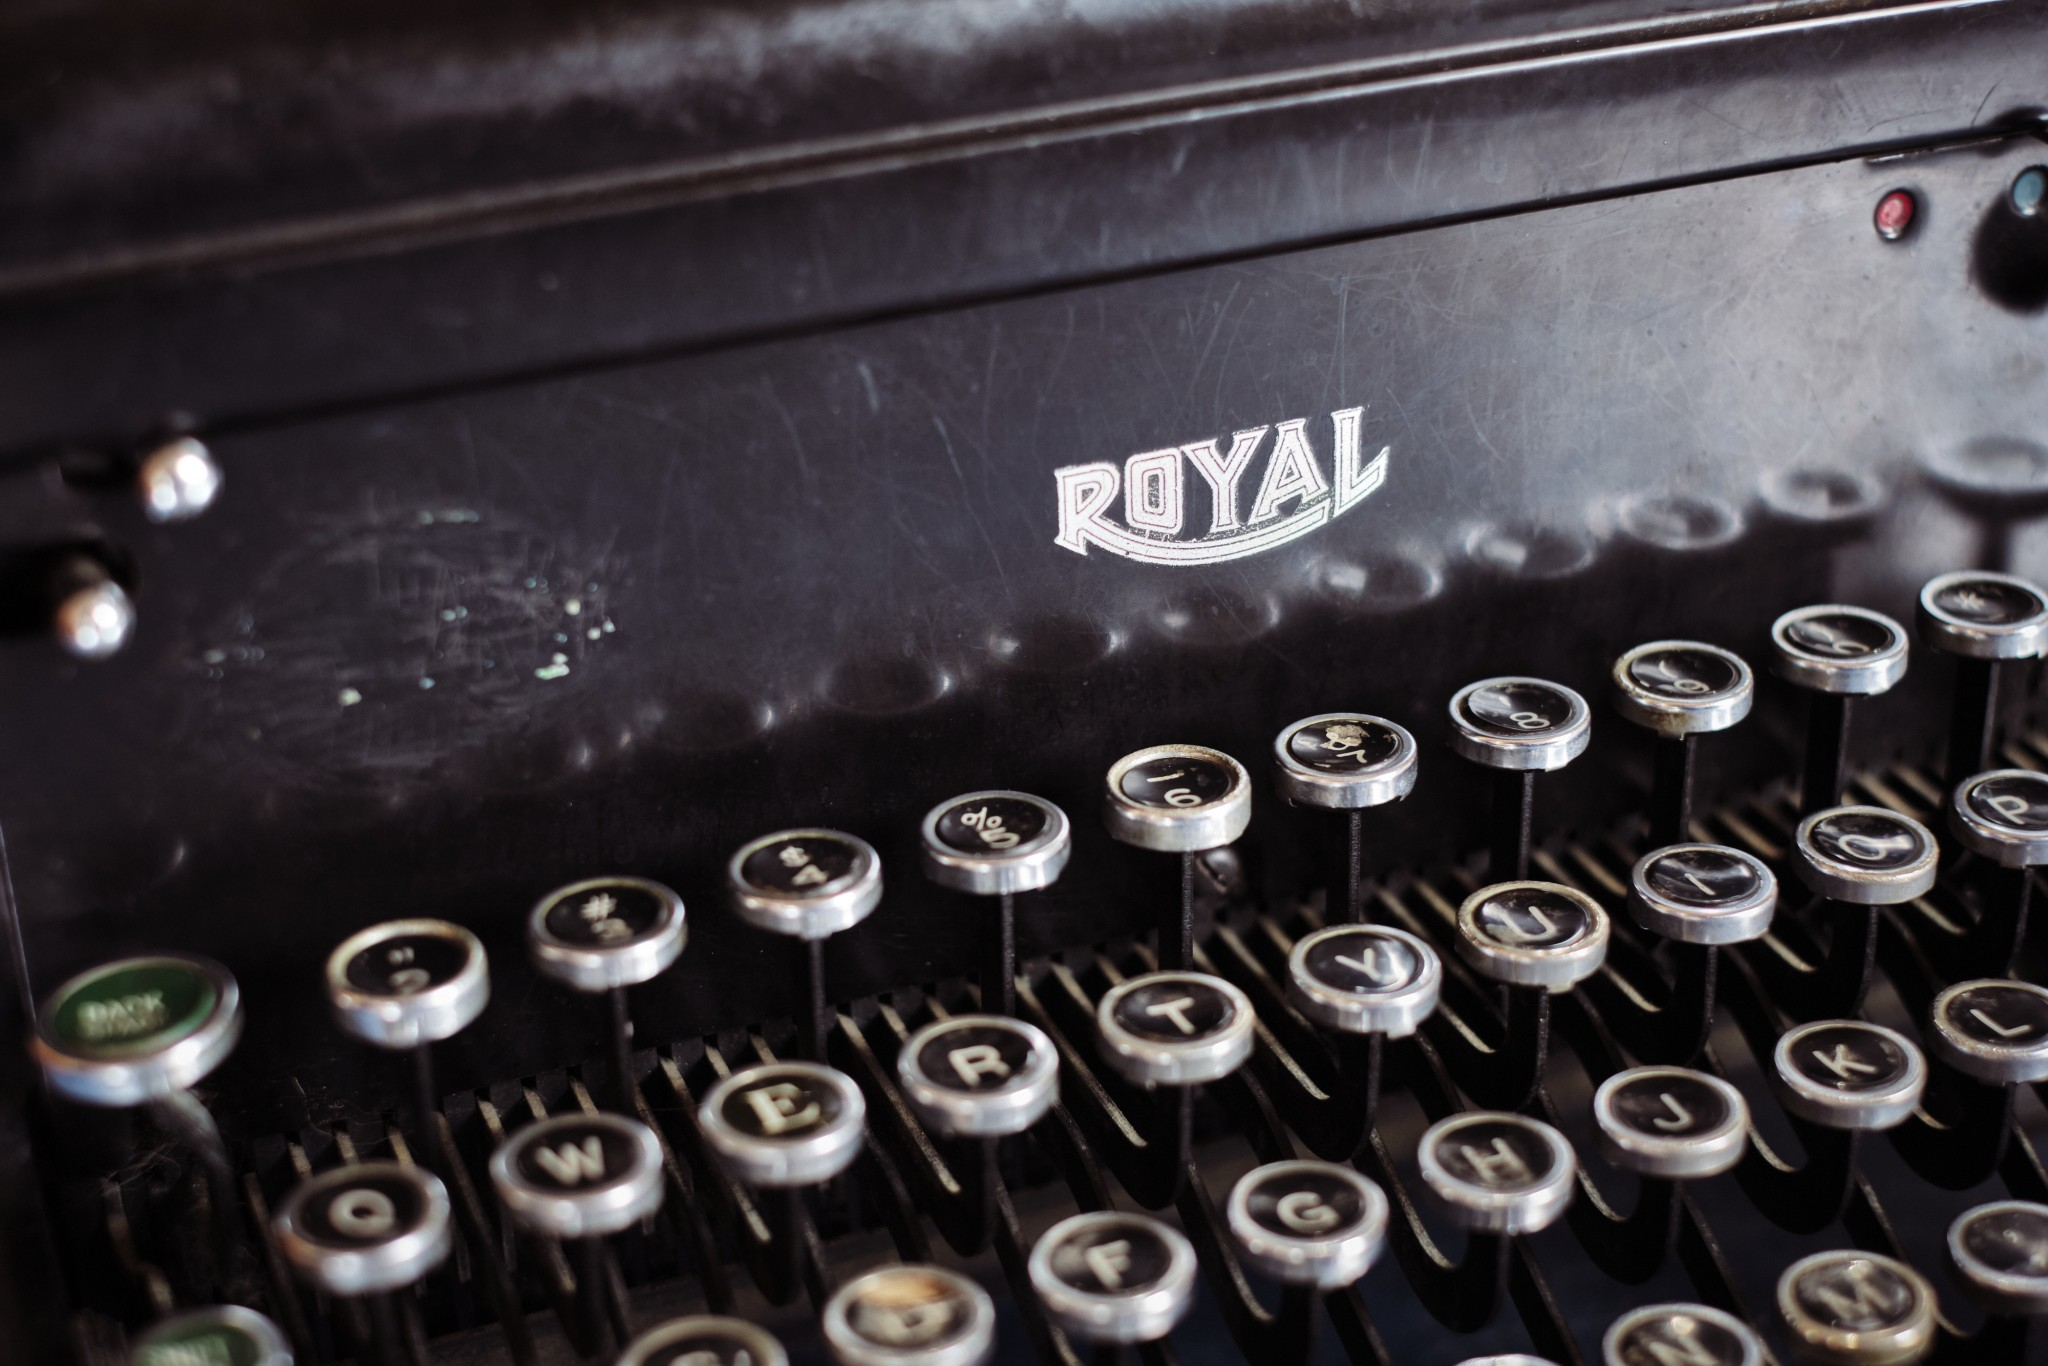 07---Royal-typewriter.jpg